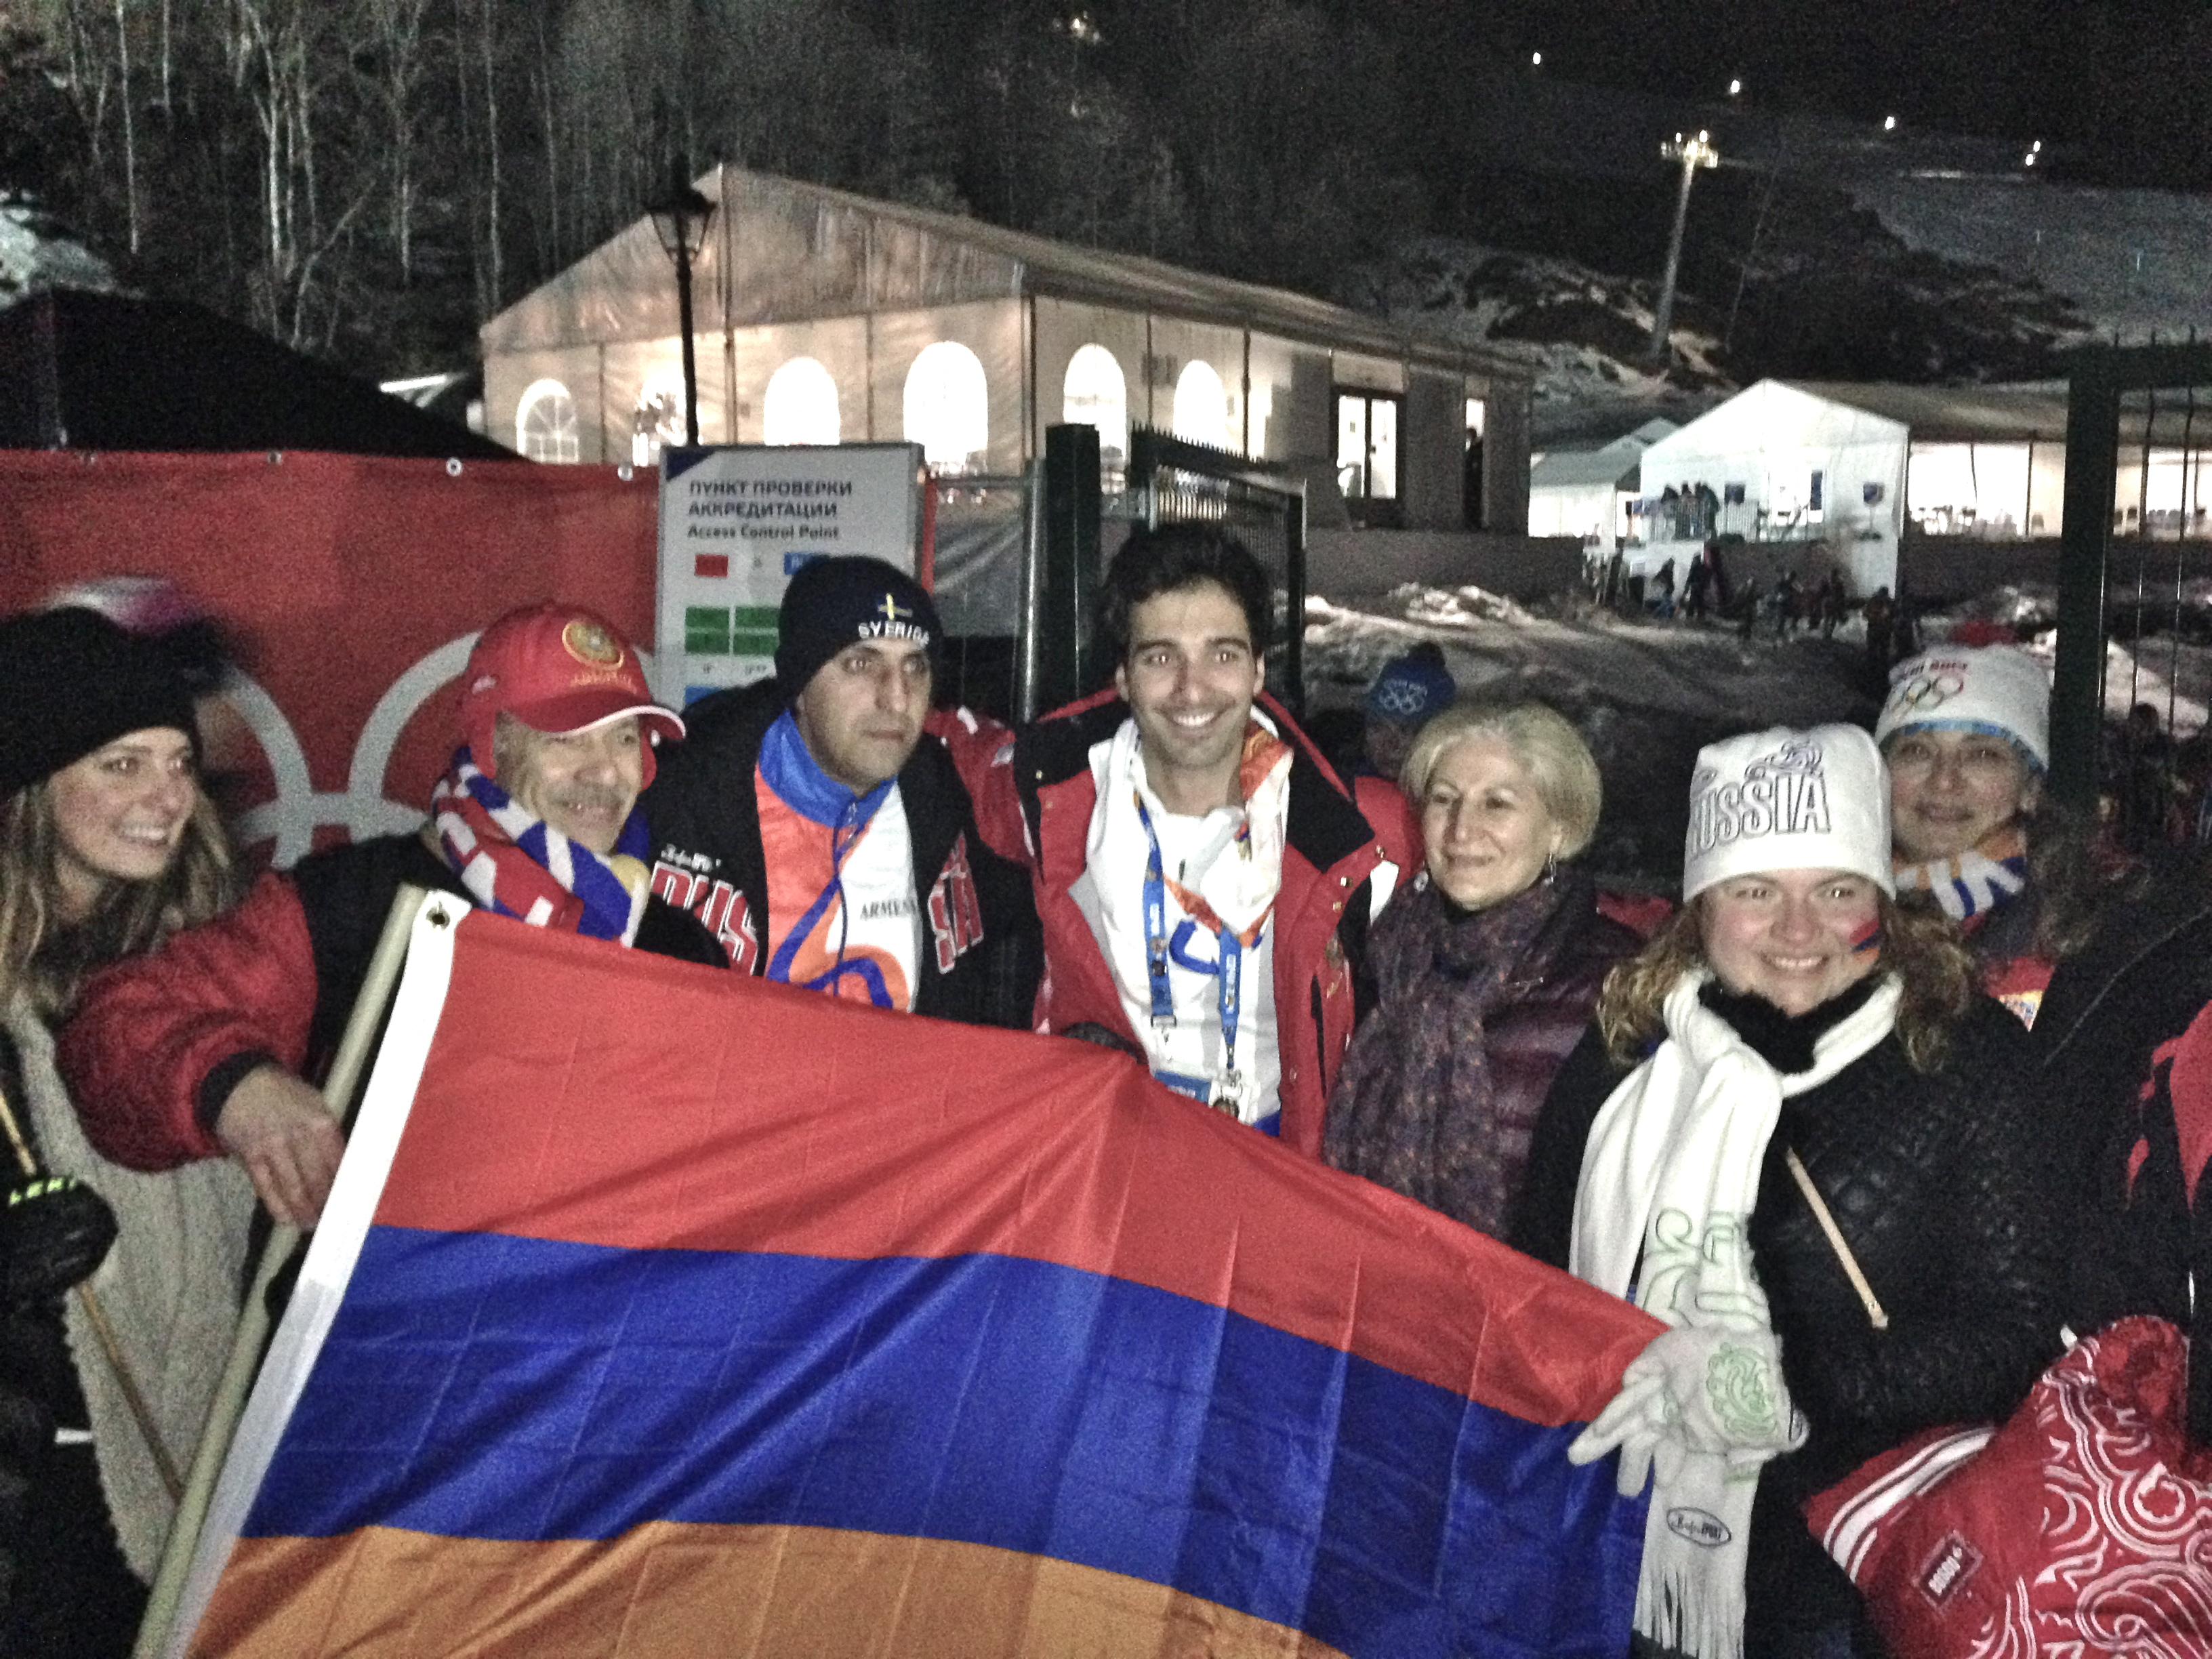 Visiting some fans after my slalom finish